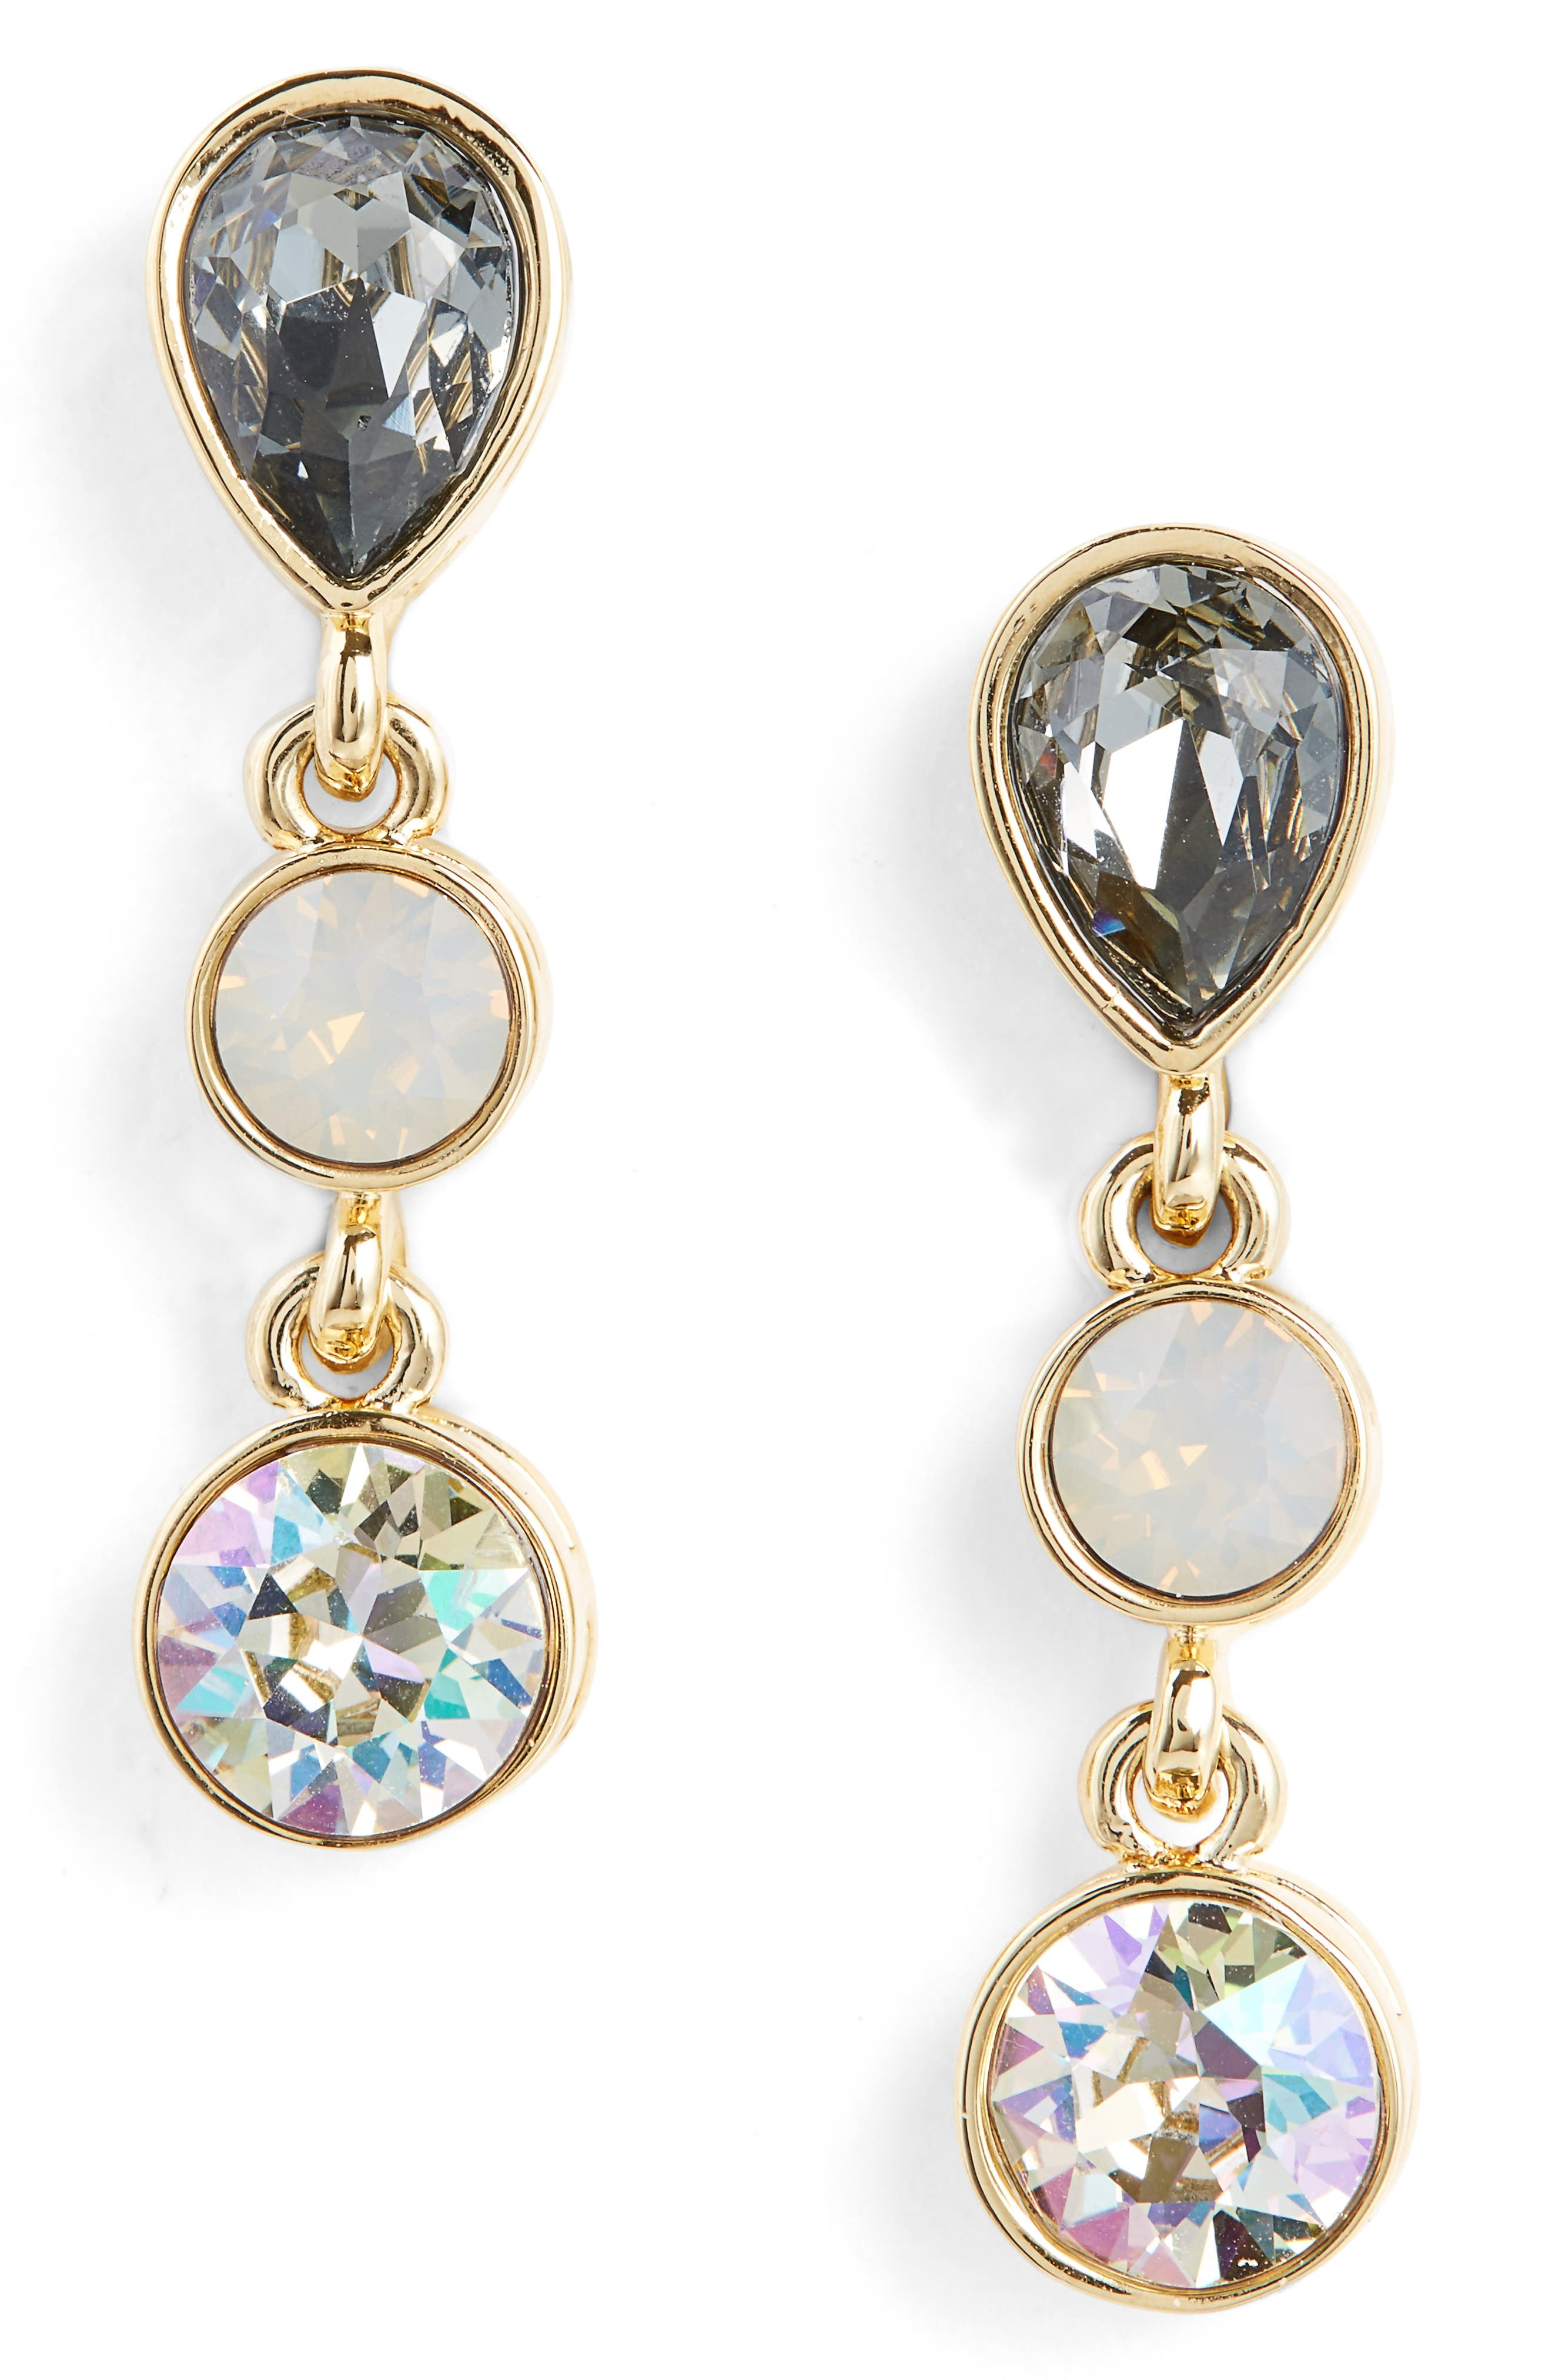 Swarovski Crystal Drop Earrings,                             Main thumbnail 1, color,                             710